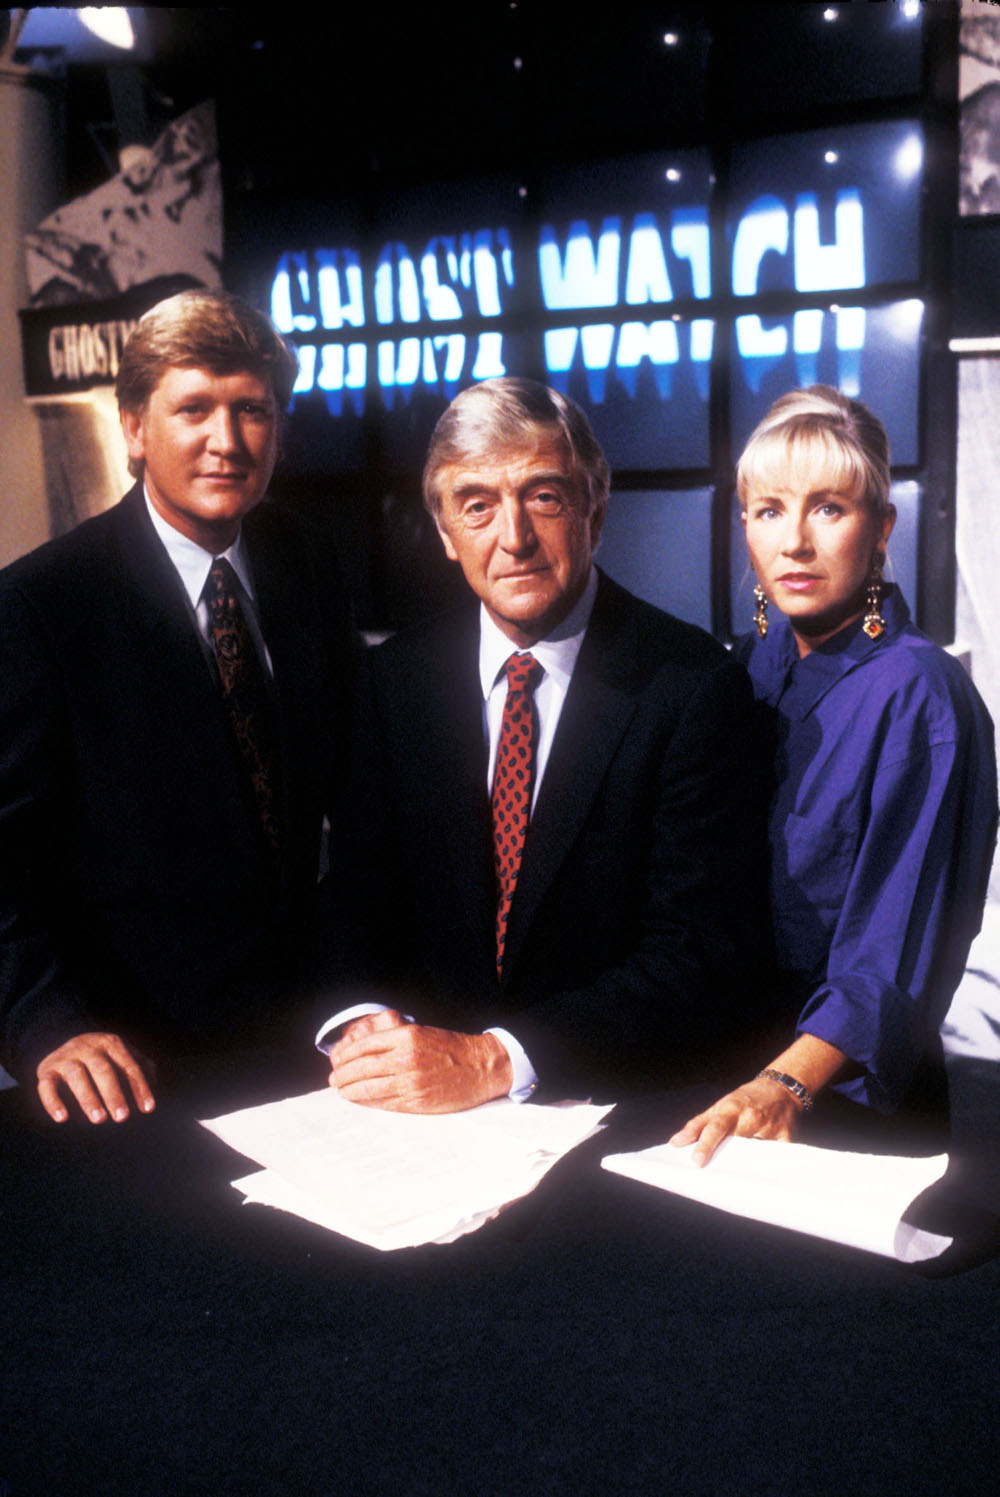 Ghostwatch - GHOSTWATCH: Still One of the Scariest Movies Ever Made